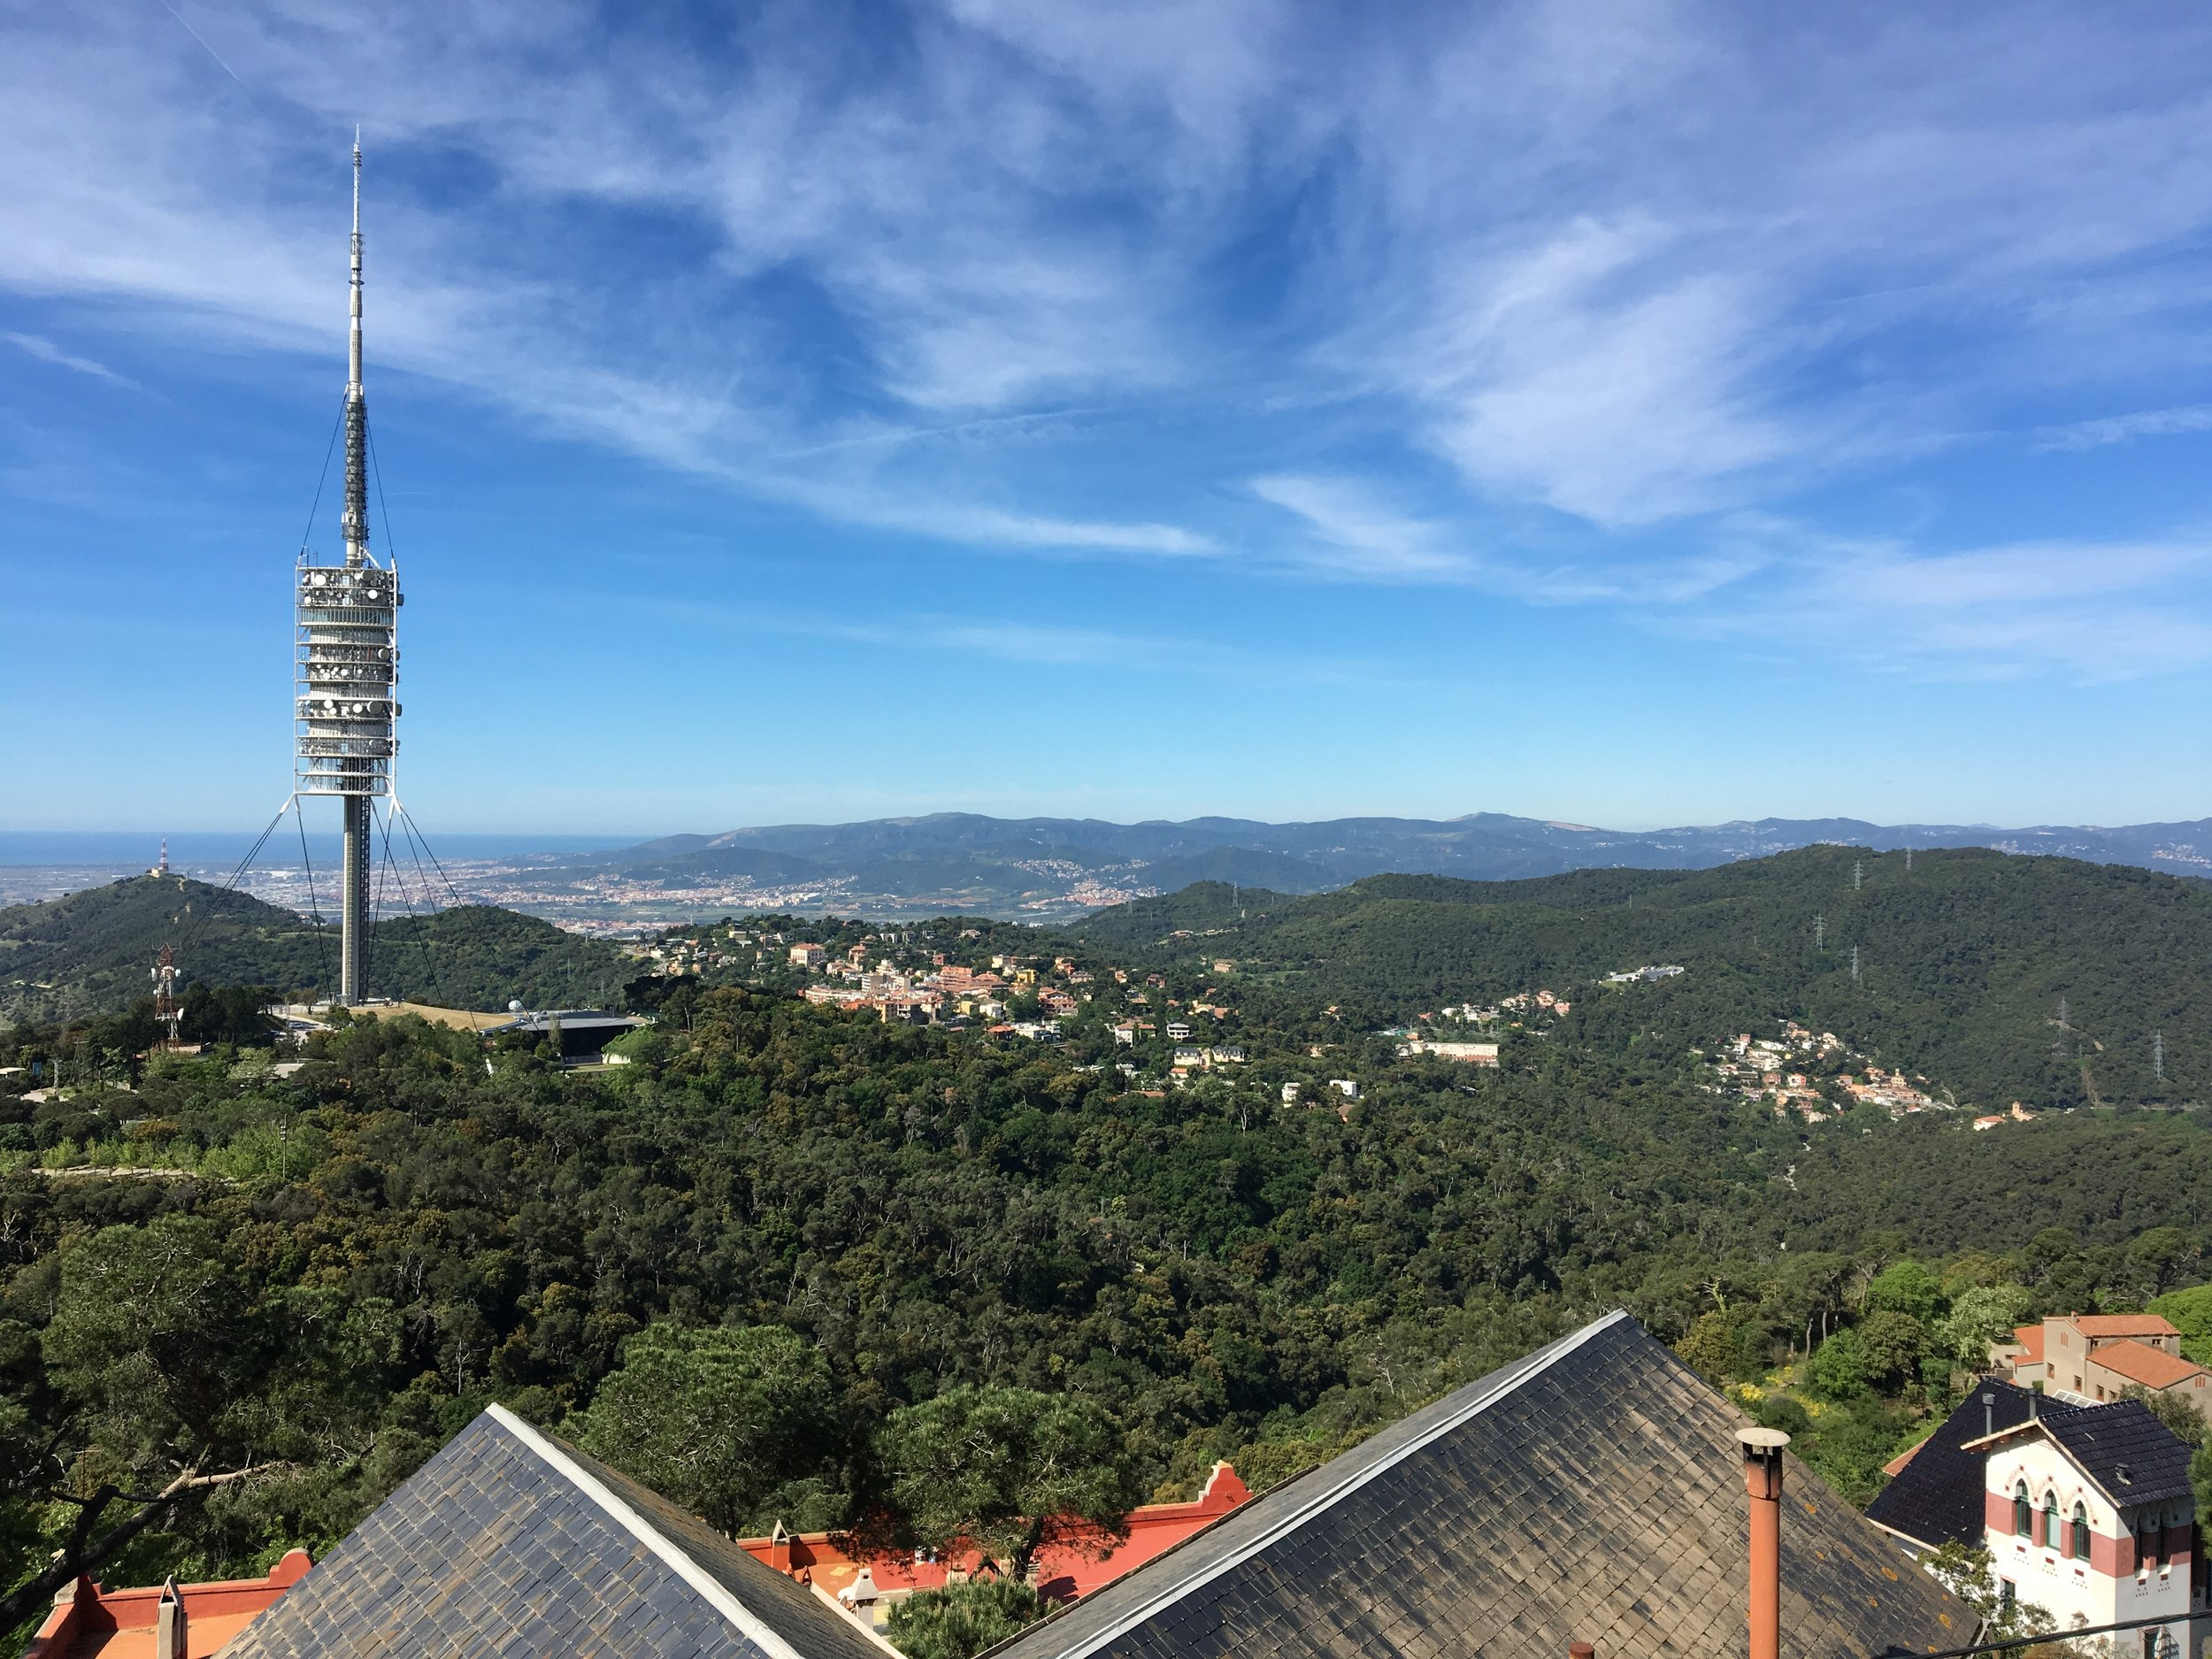 Looking to the west; the Torre de Collserola, a radio tower constructed specially for the 1992 Summer Olympics.